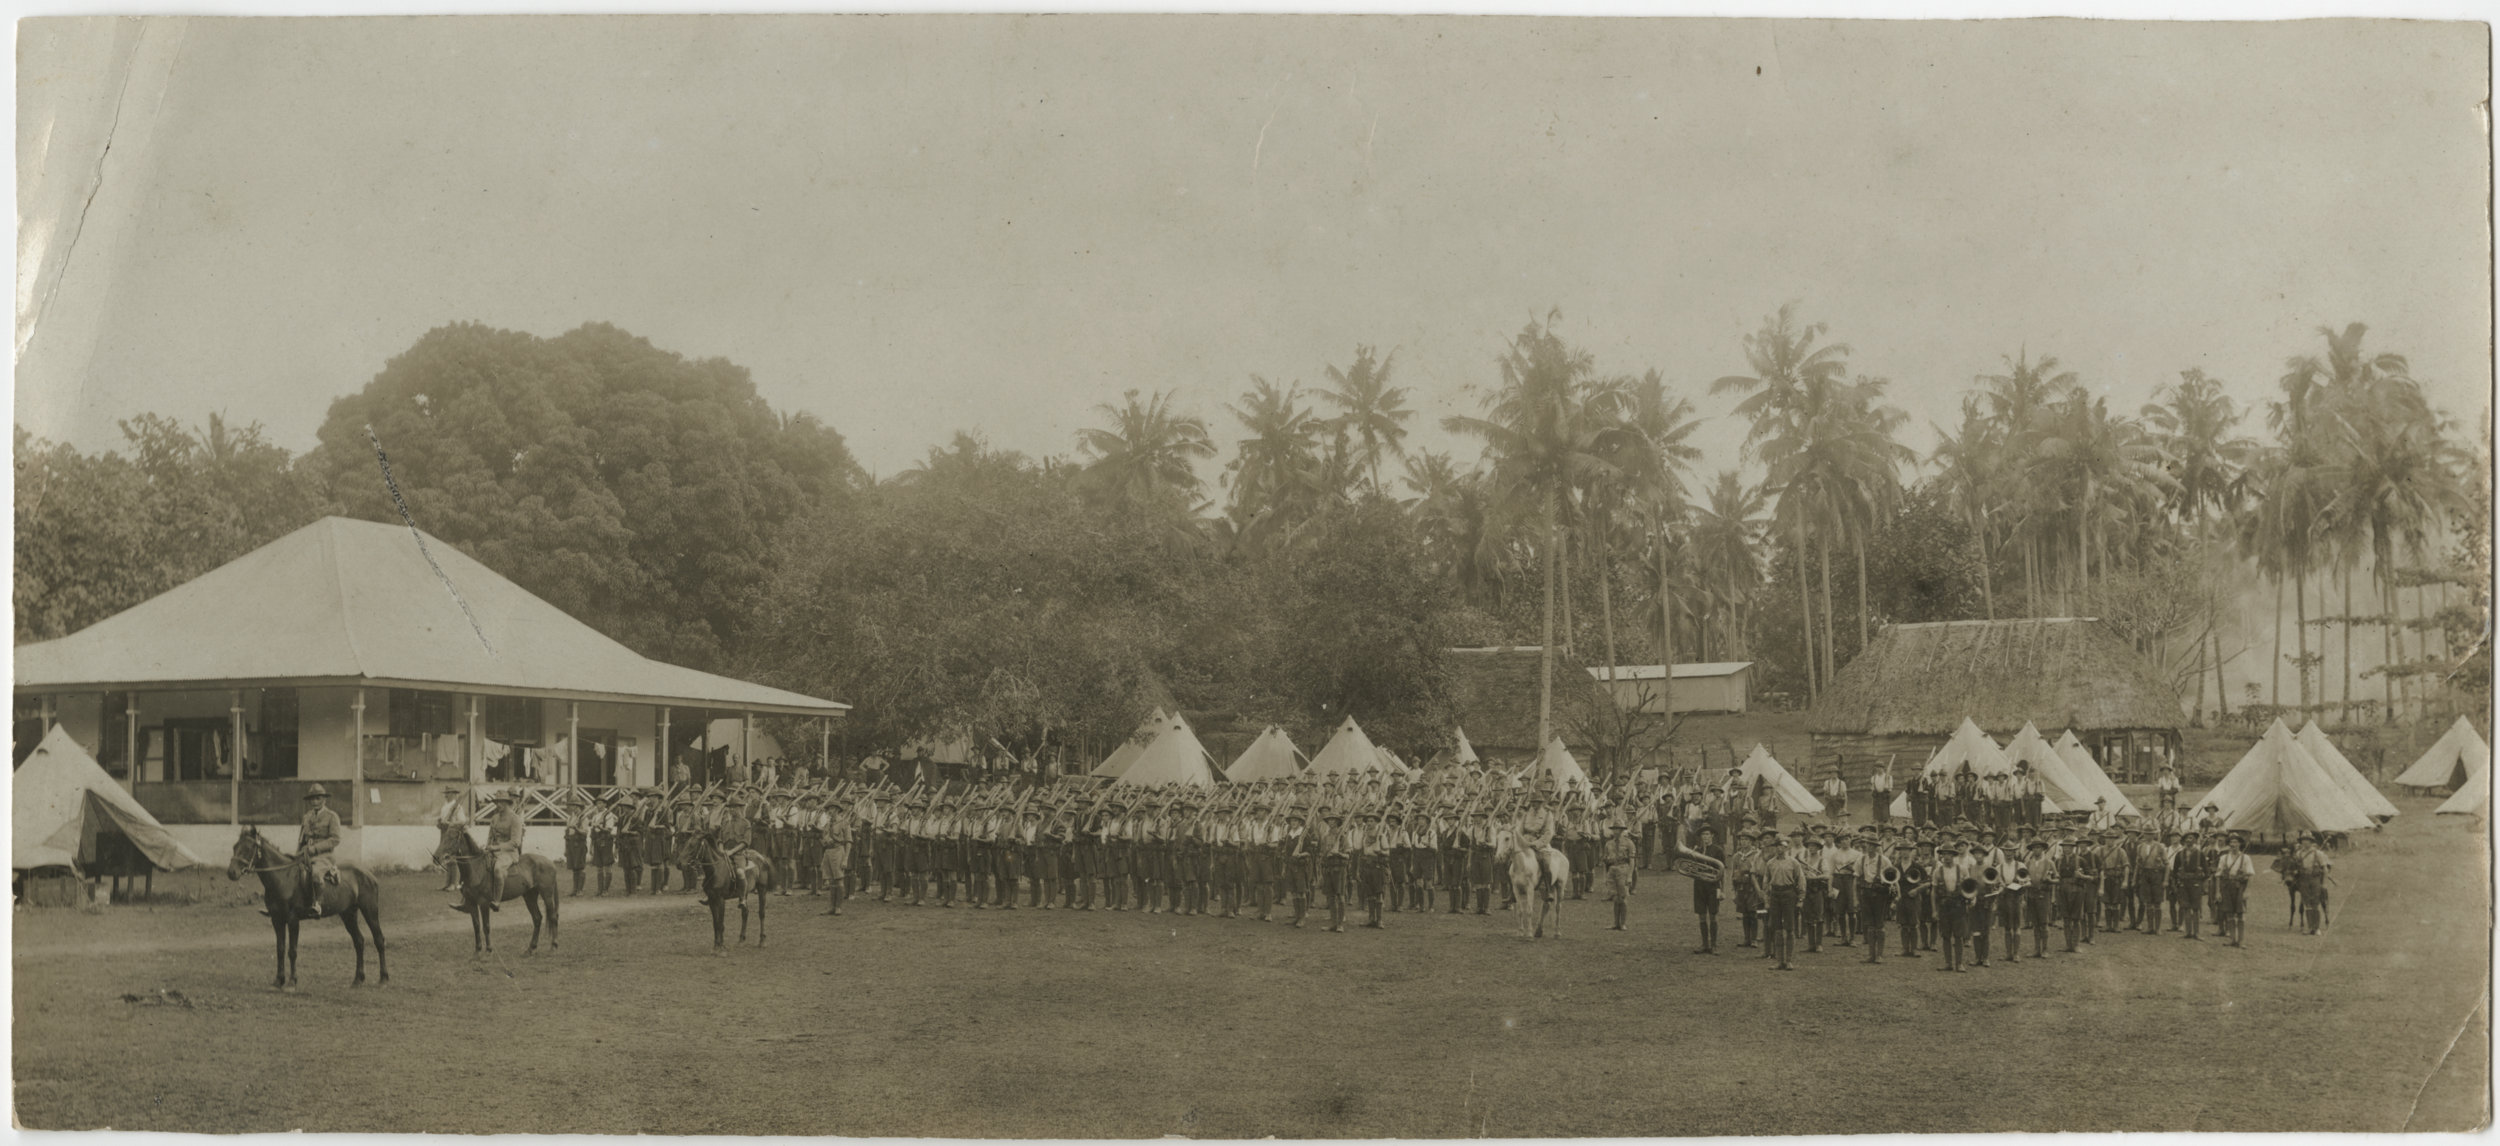 Troops in formation